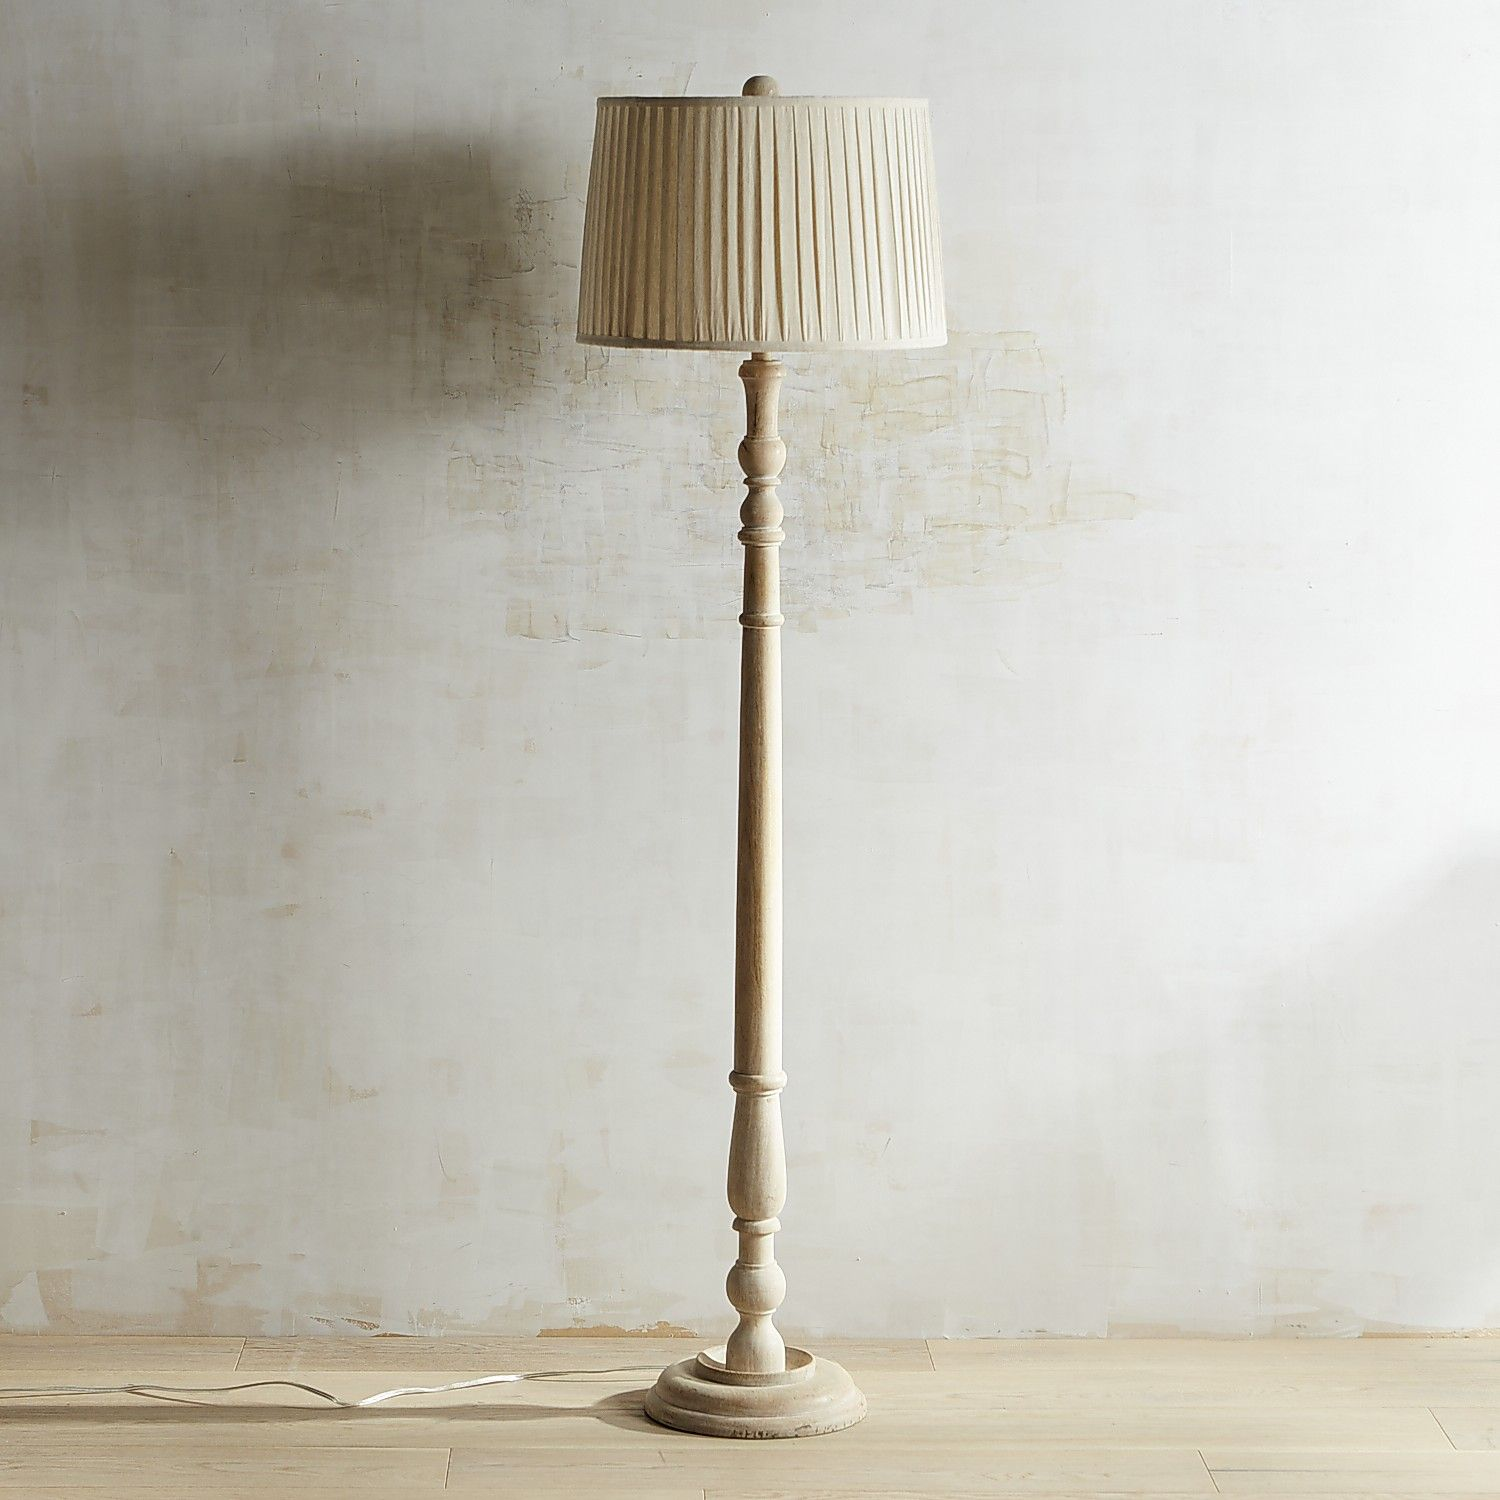 Ashmere Whitewashed Wooden Floor Lamp Wooden Floor Lamps Farmhouse Floor Lamps Country Floor Lamps